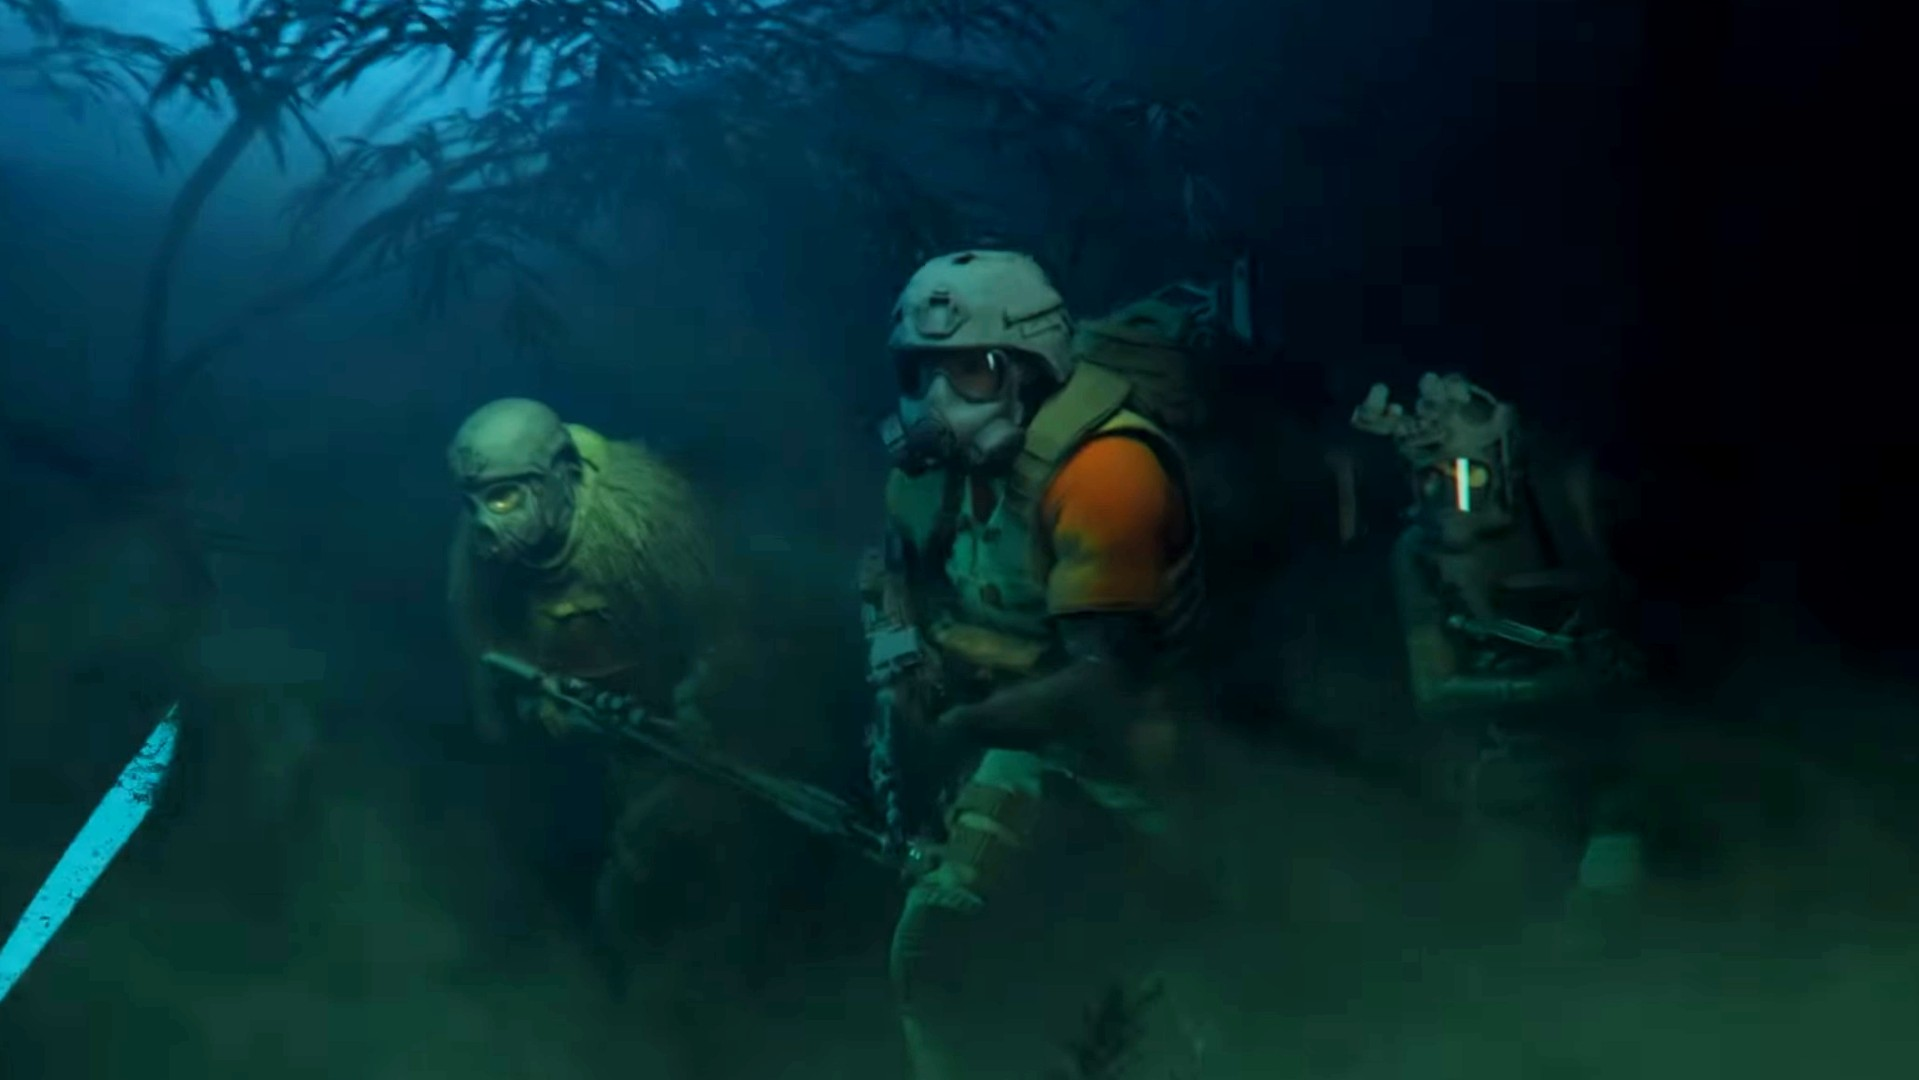 Ghost Recon Breakpoint's Teammate Experience Update launches this month